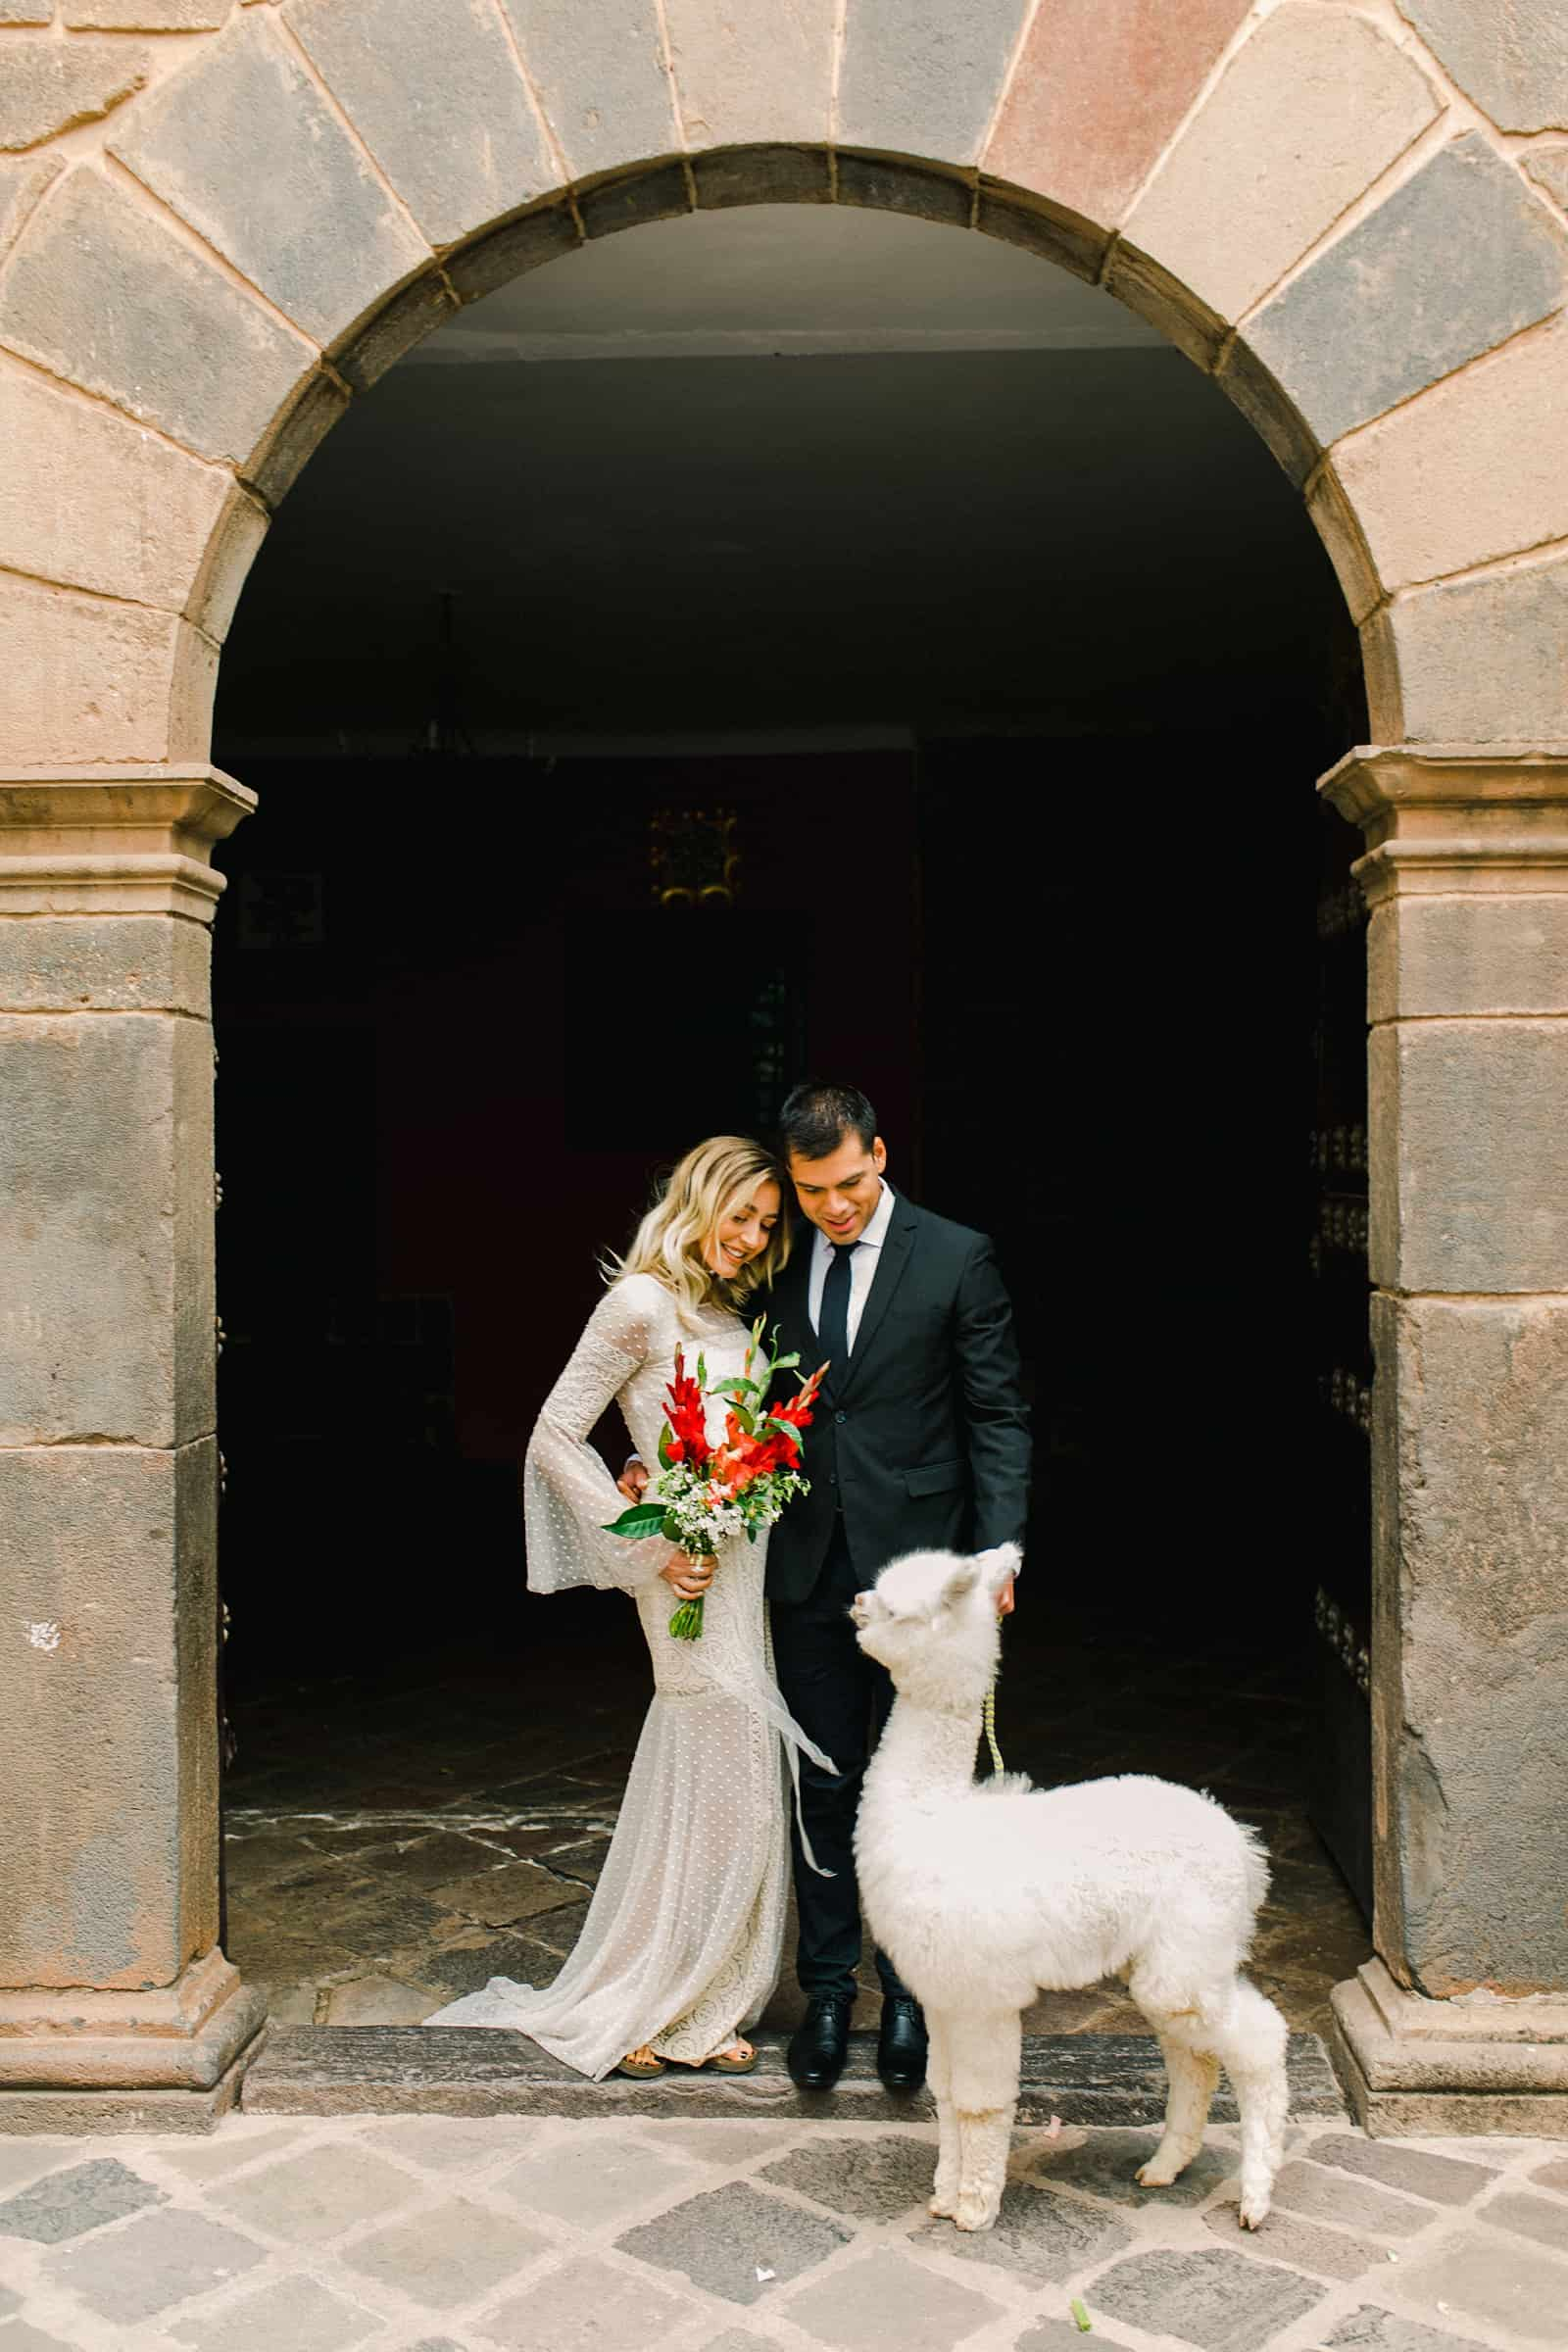 Cusco Peru Destination Wedding, travel wedding photography, Plaza de Armas red flowers boho wedding, bride and groom with white alpaca llama, red bouquet